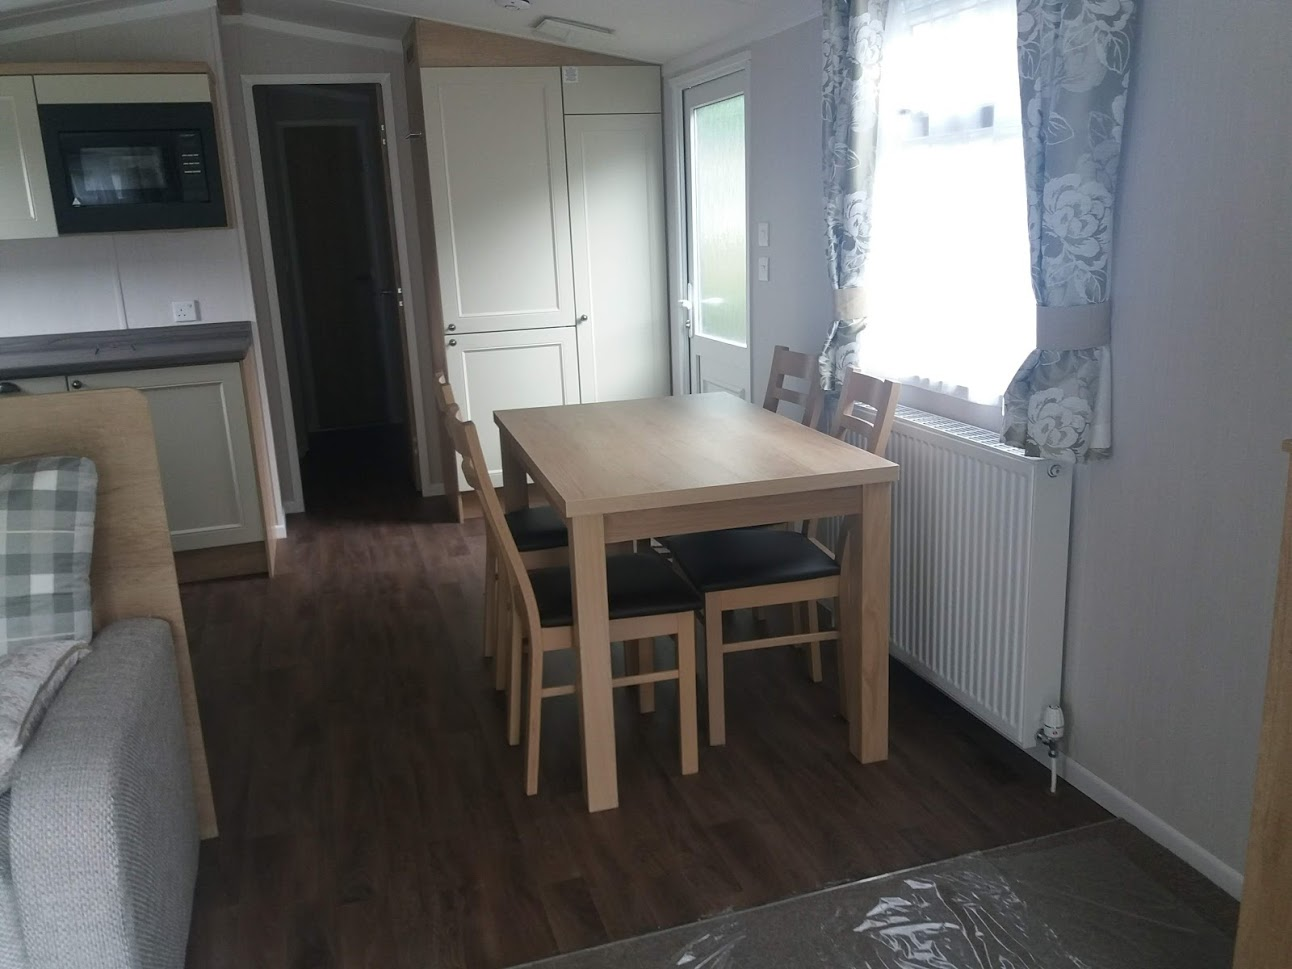 Swift Burgundy: New Static Caravans and Holiday Homes for Sale, Clifton, Morpeth Large Image 3